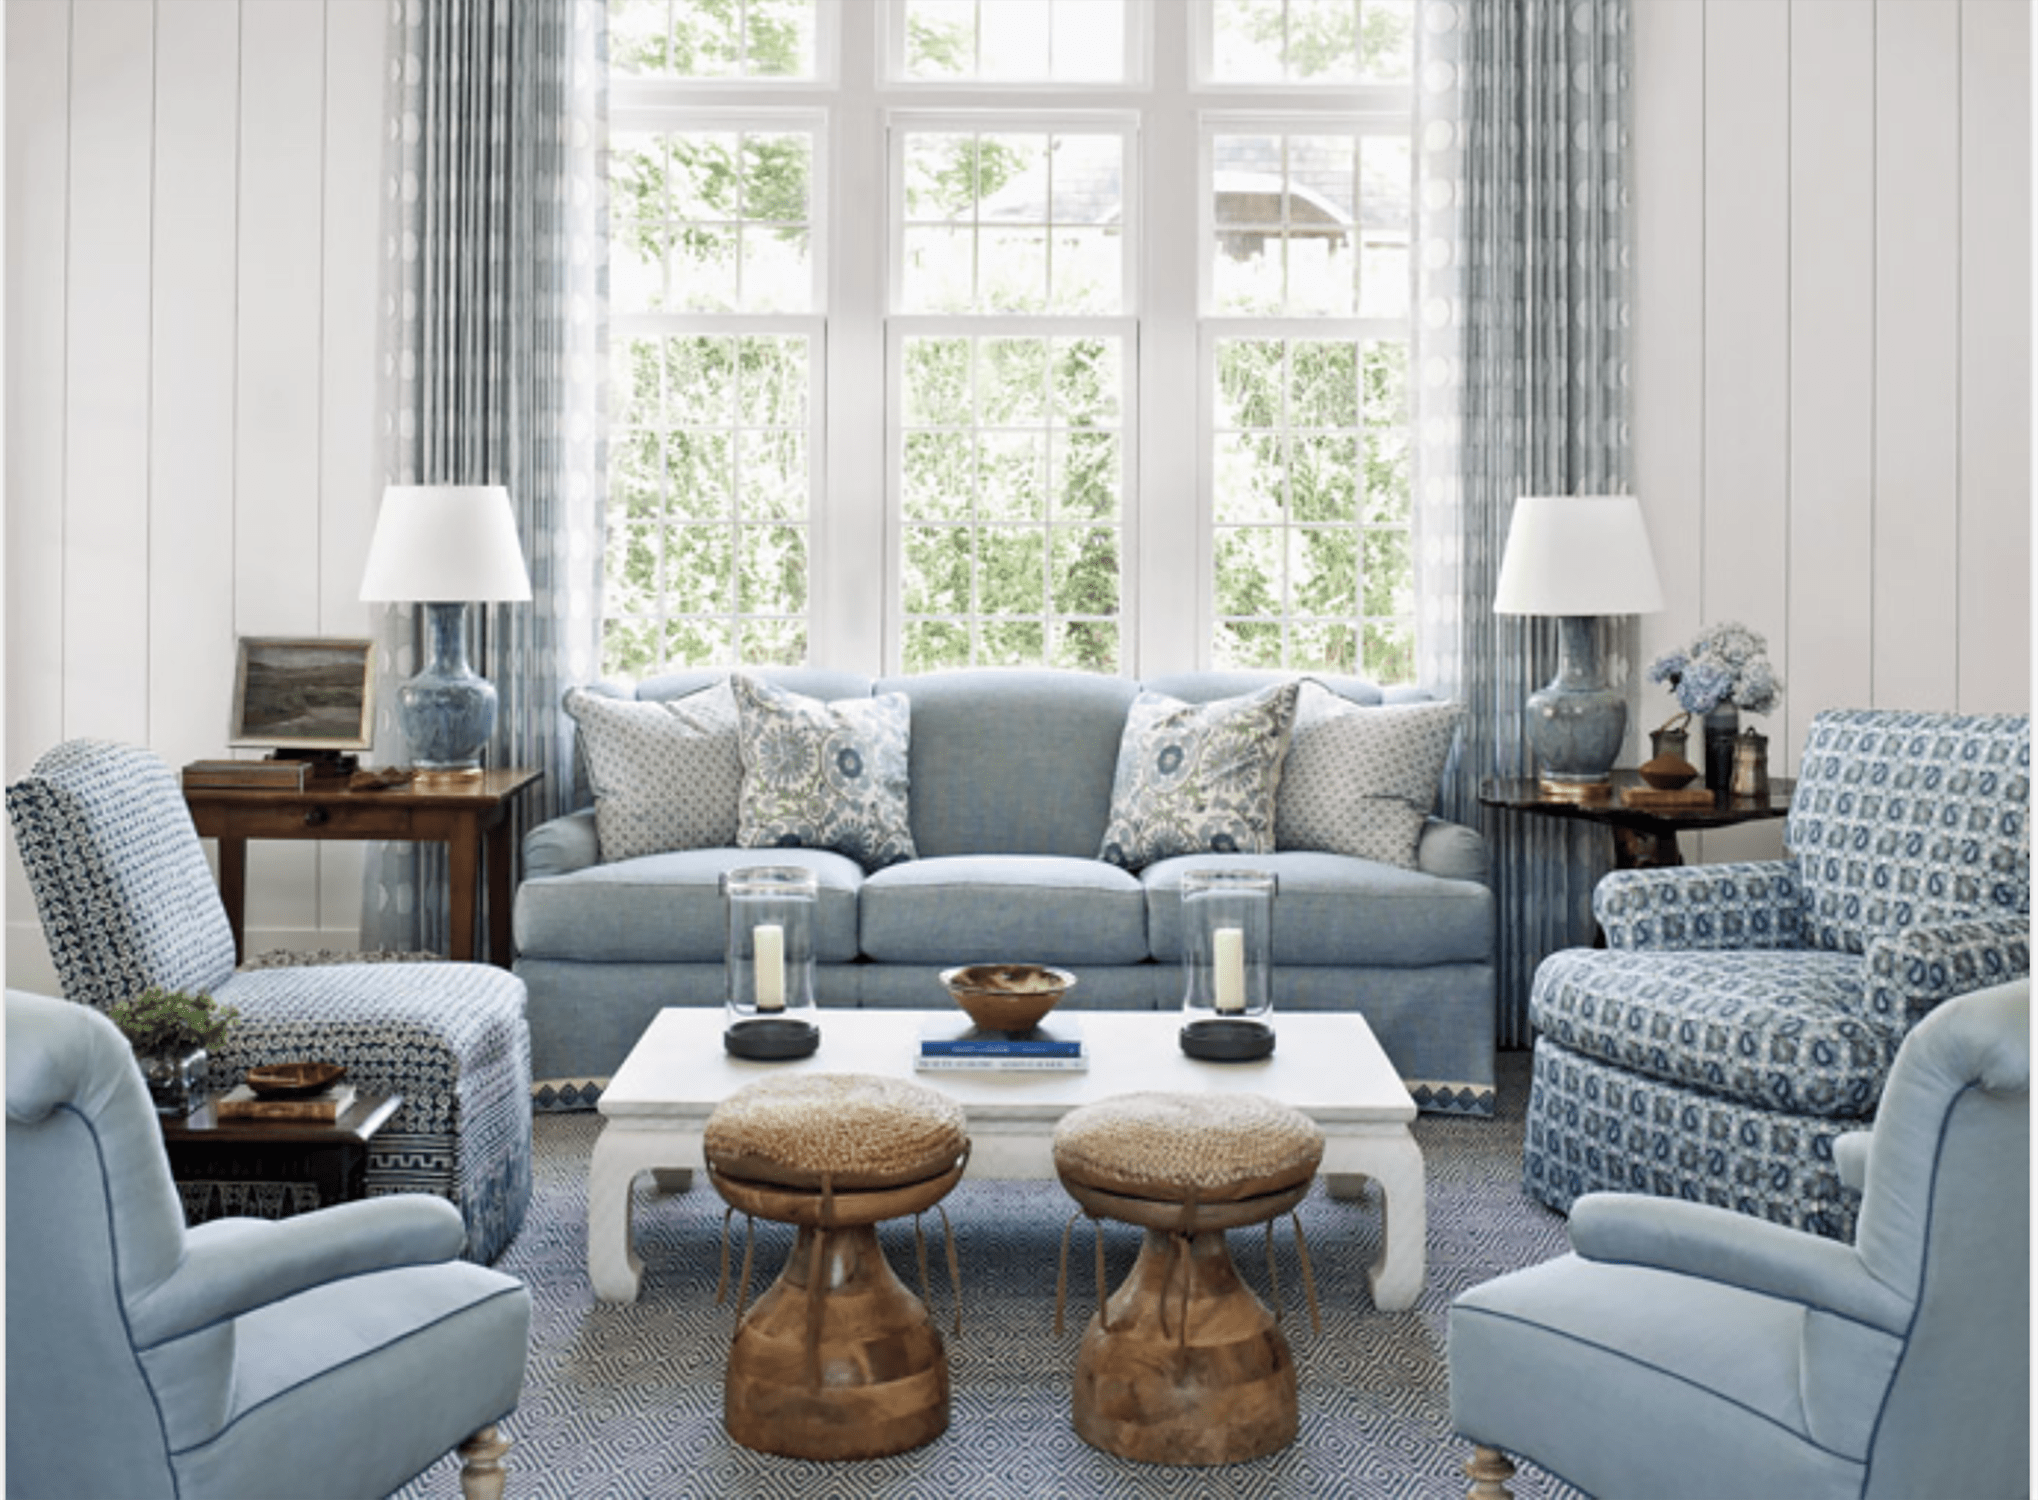 phoebe howard living space with white coffee table